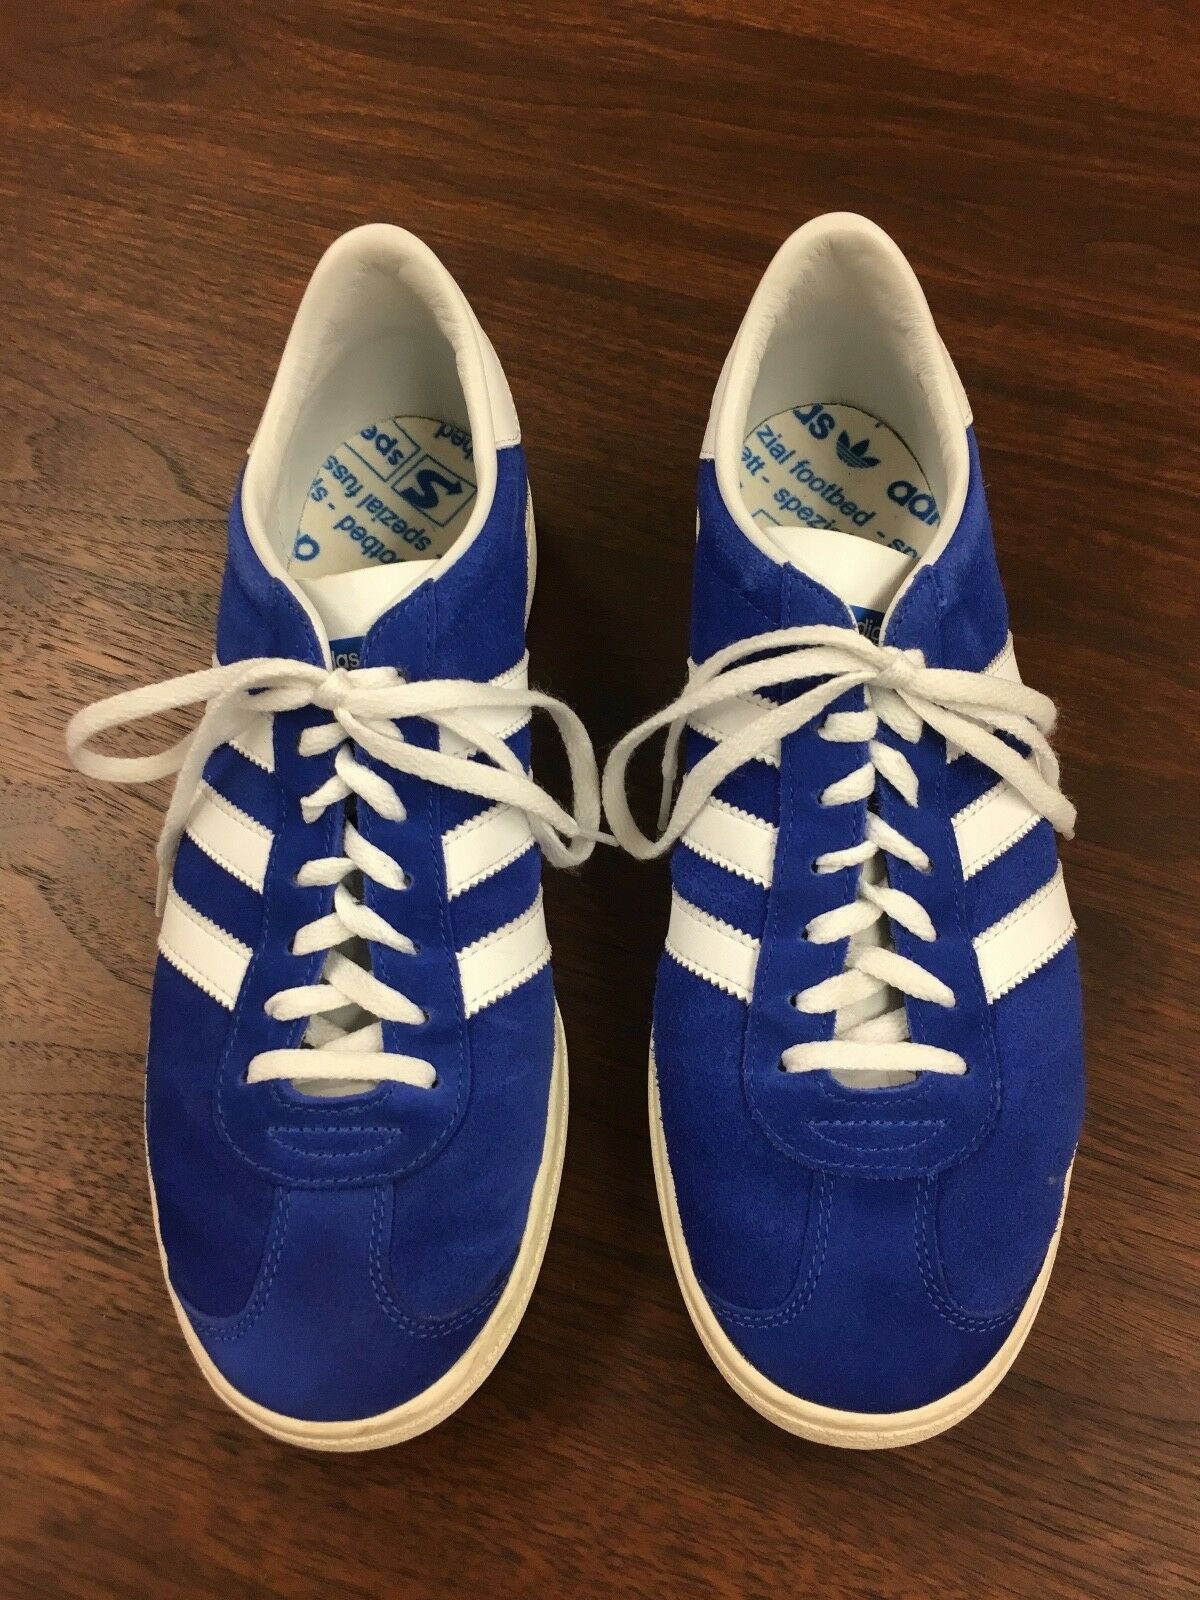 Adidas Originals men's sneakers royal bluee suede US 9